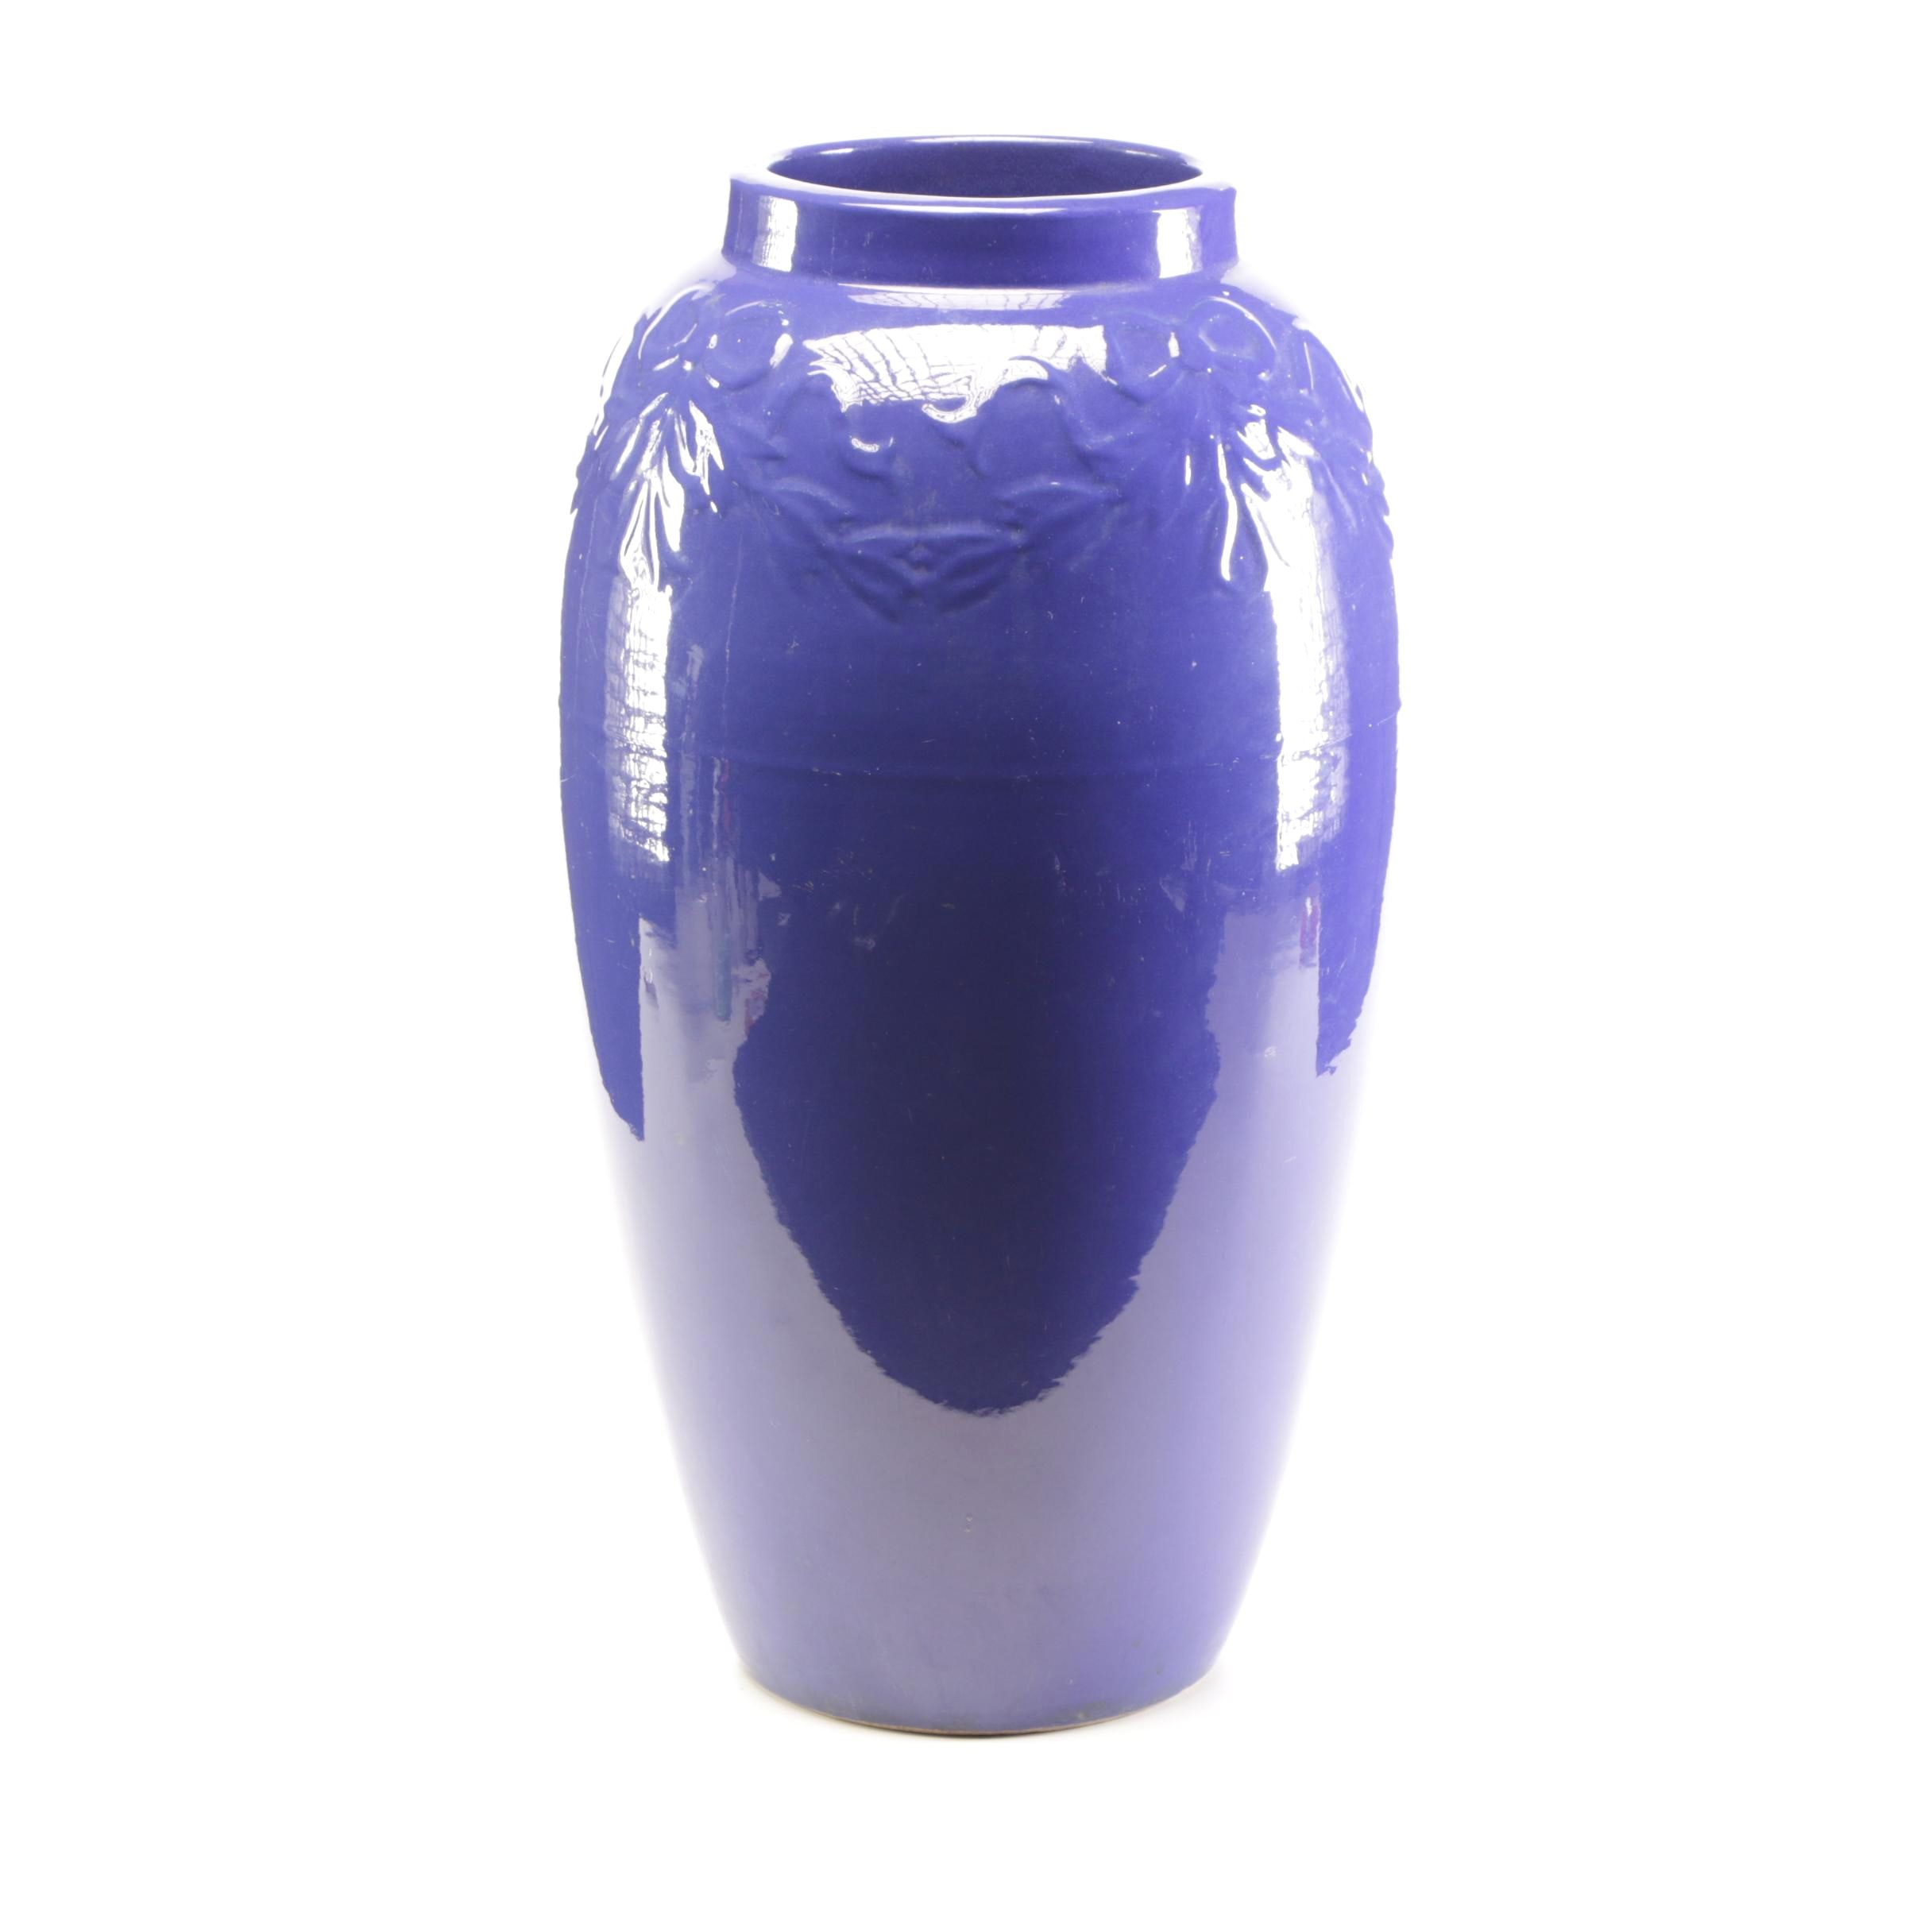 Cobalt Blue Earthenware Floor Vase, Early to Mid 20th Century